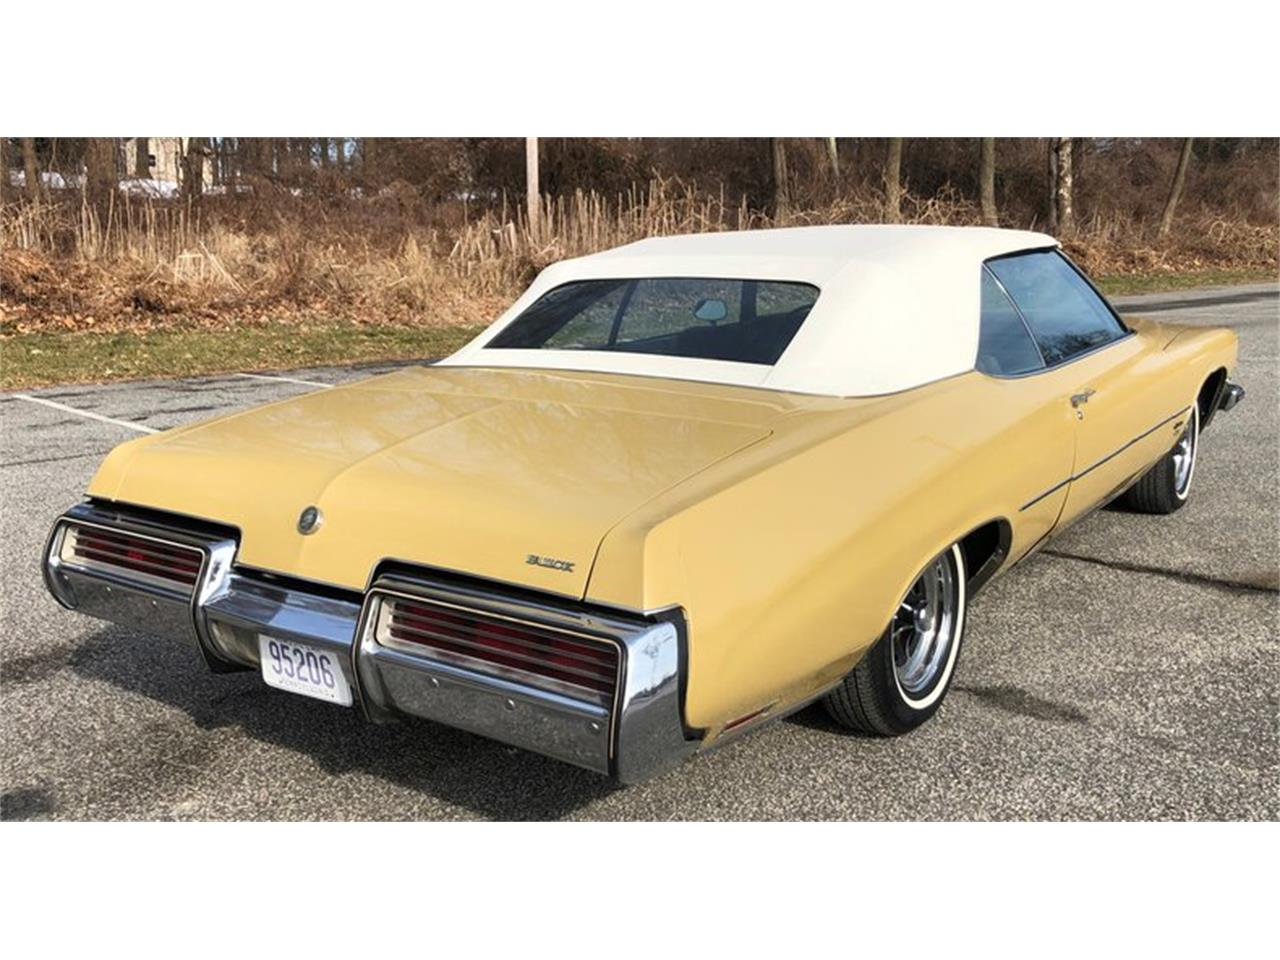 Large Picture of '73 Buick Centurion located in Pennsylvania - $21,500.00 Offered by Connors Motorcar Company - PBP7